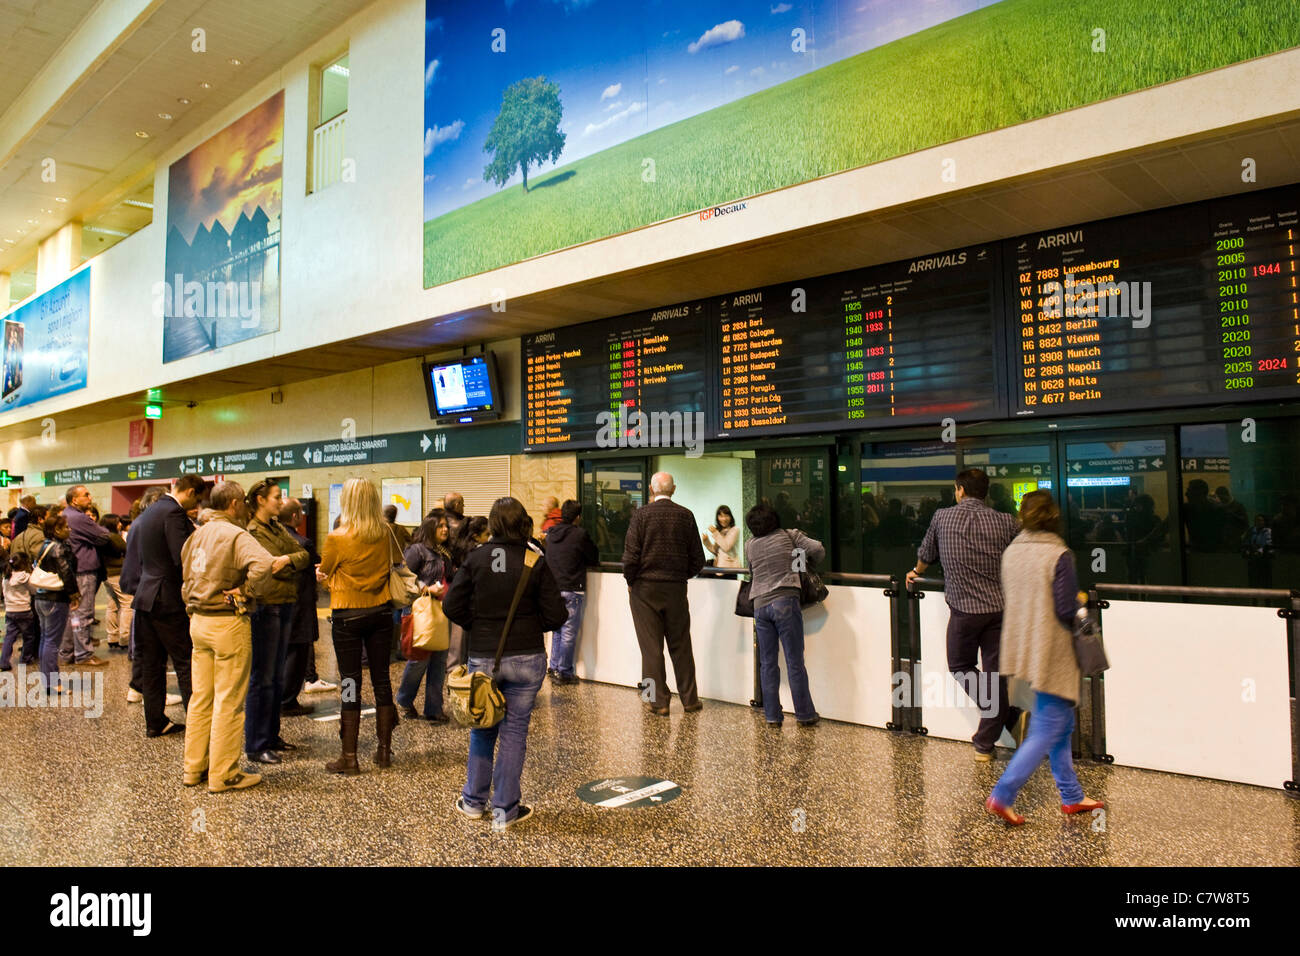 Italy, Lombardy, Malpensa airport, arrivals hall - Stock Image